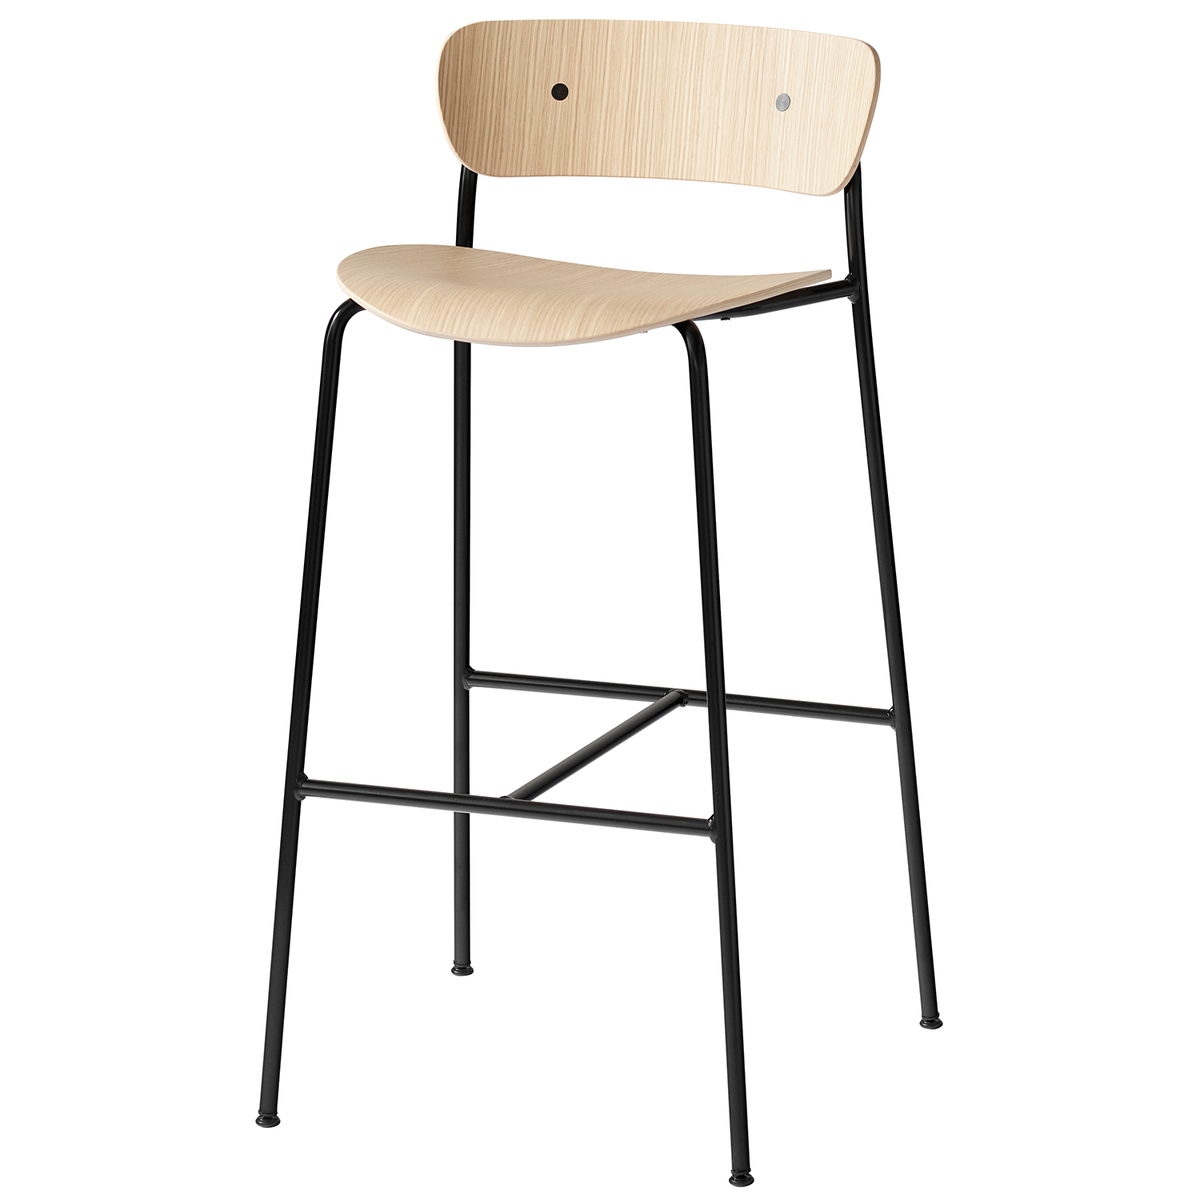 Tradition Pavilion Av7 Av9 Bar Stool